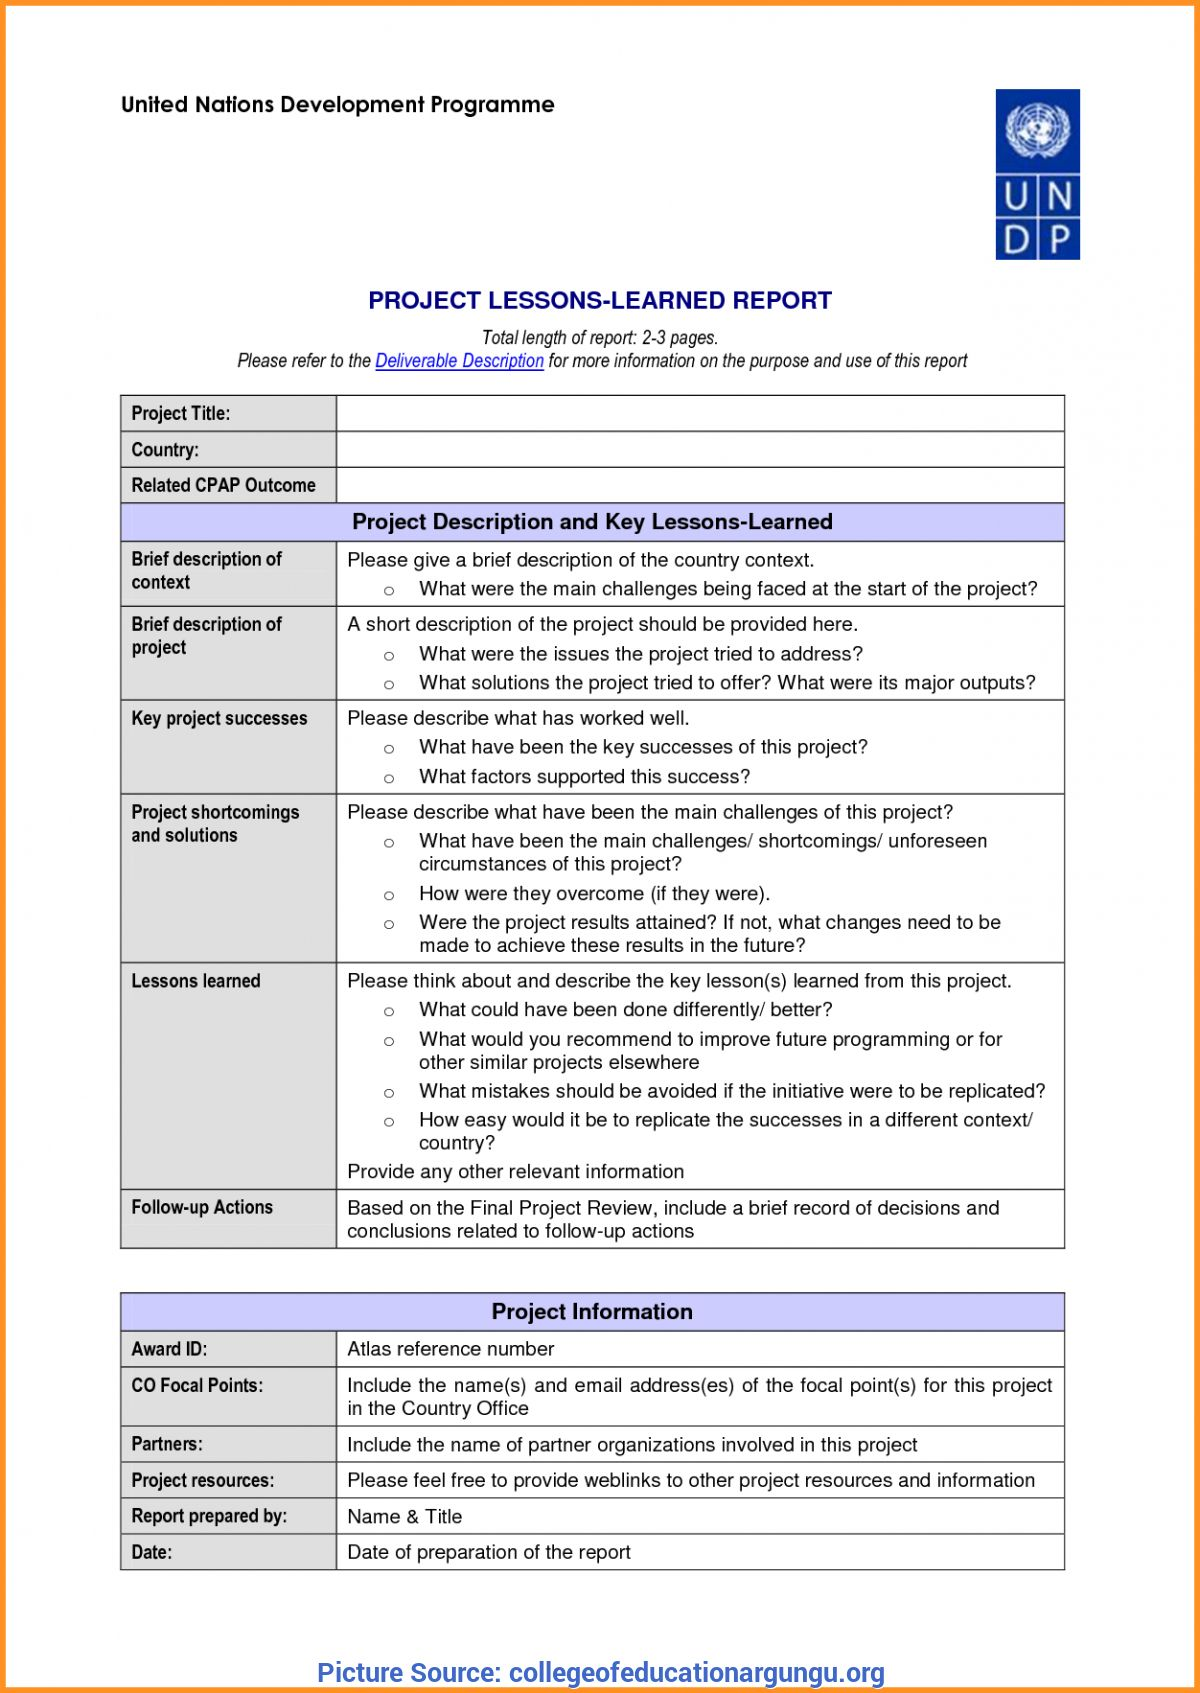 The Awesome Great Hse Lessons Learned Template 23 Lessons Learnt Report Regarding Lessons Learnt Report Te Lessons Learned Report Card Template Report Template Project management lessons learned template